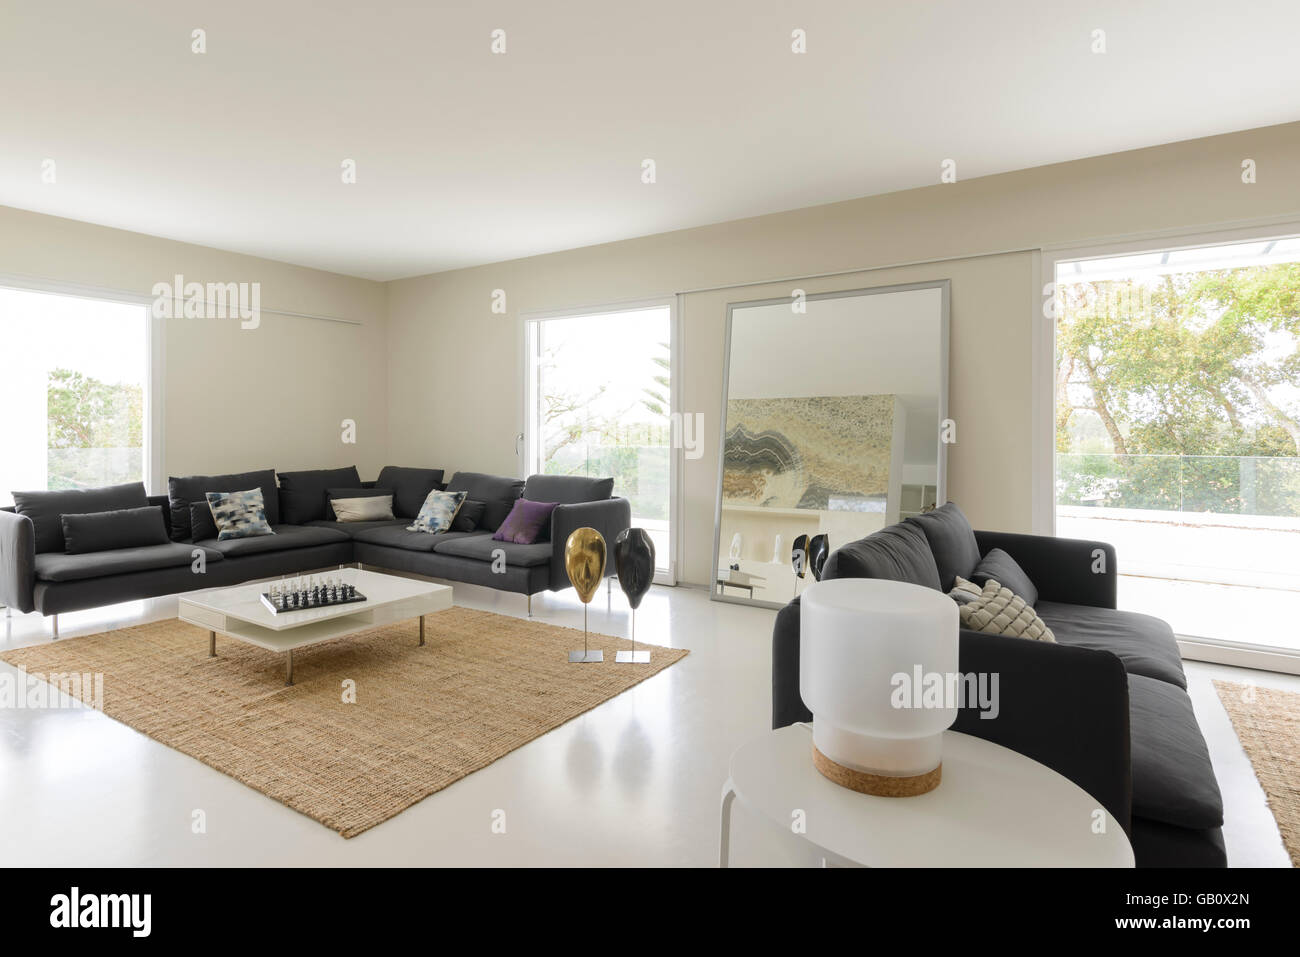 Modern living room with big sofas and luminous large windows - Stock Image